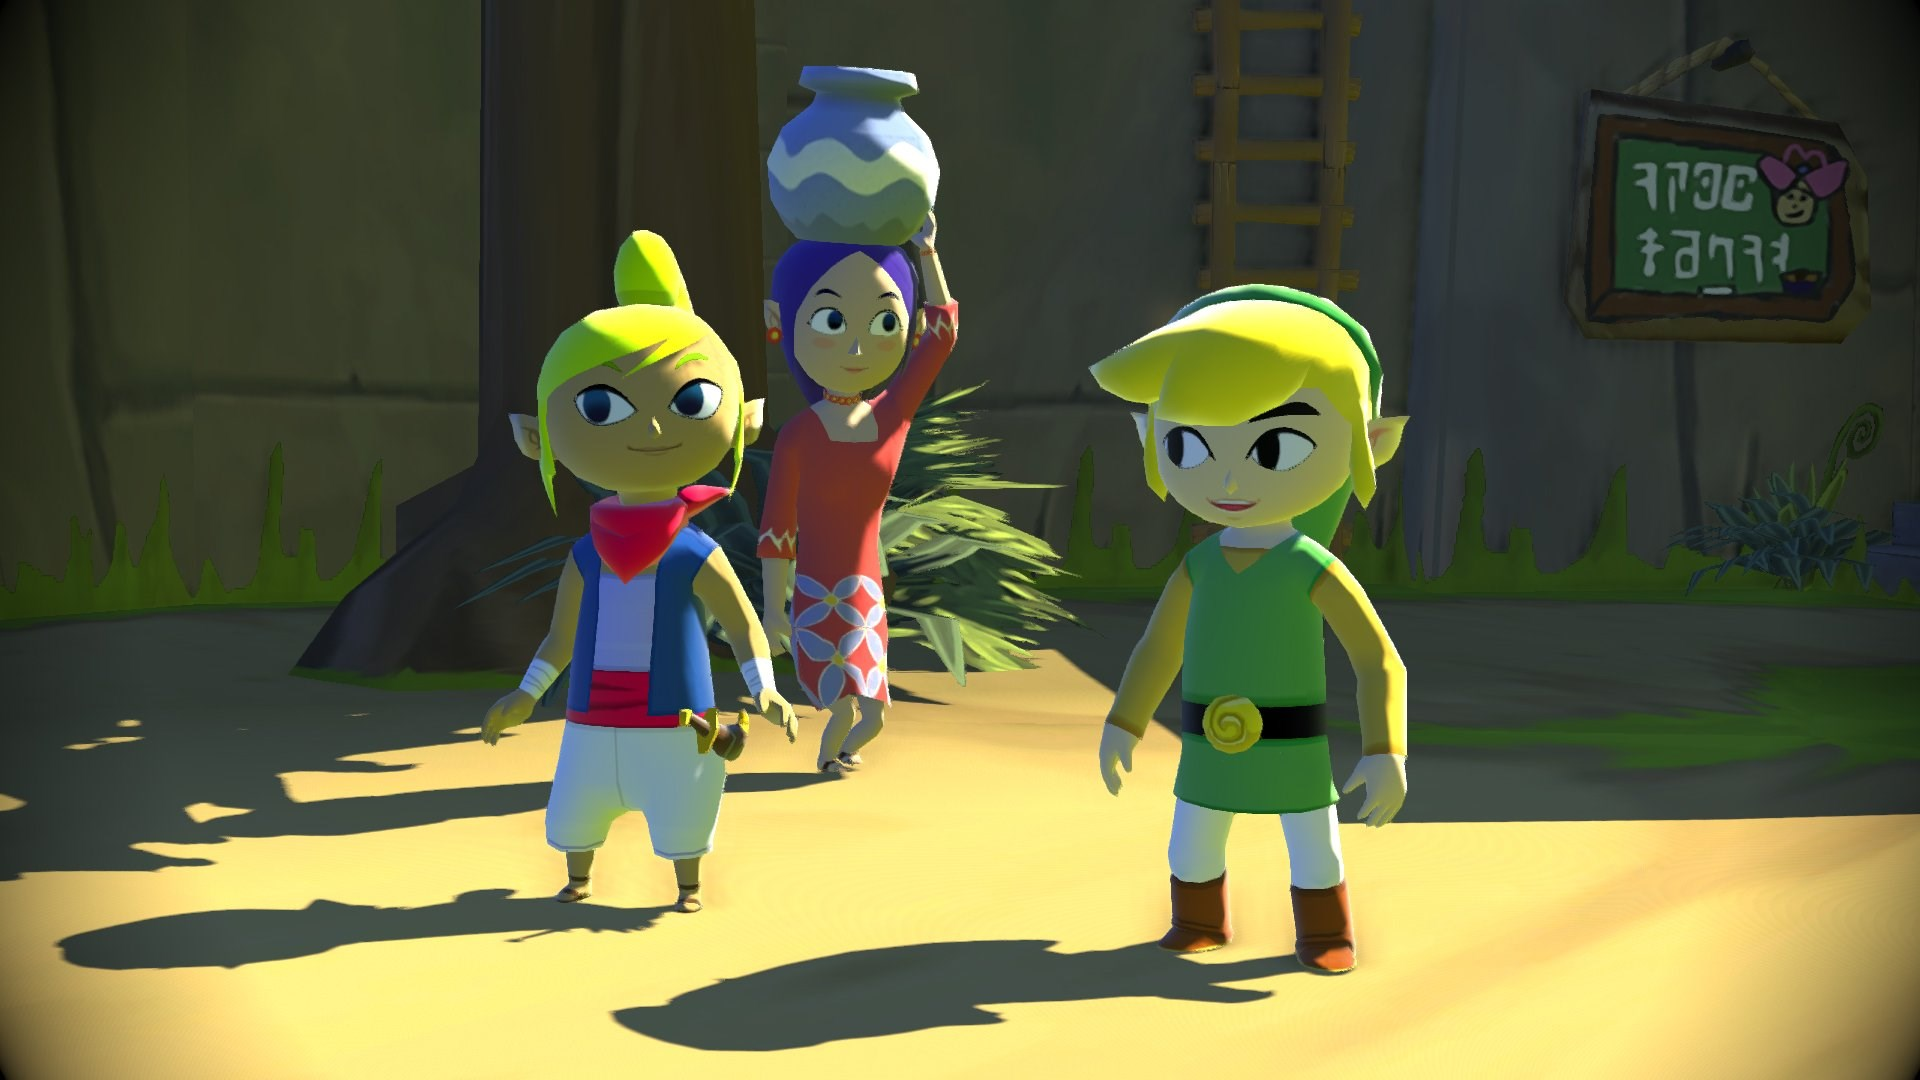 1920x1080-widescreen-hd-the-legend-of-zelda-the-wind-waker-hd-wallpaper-wp340989